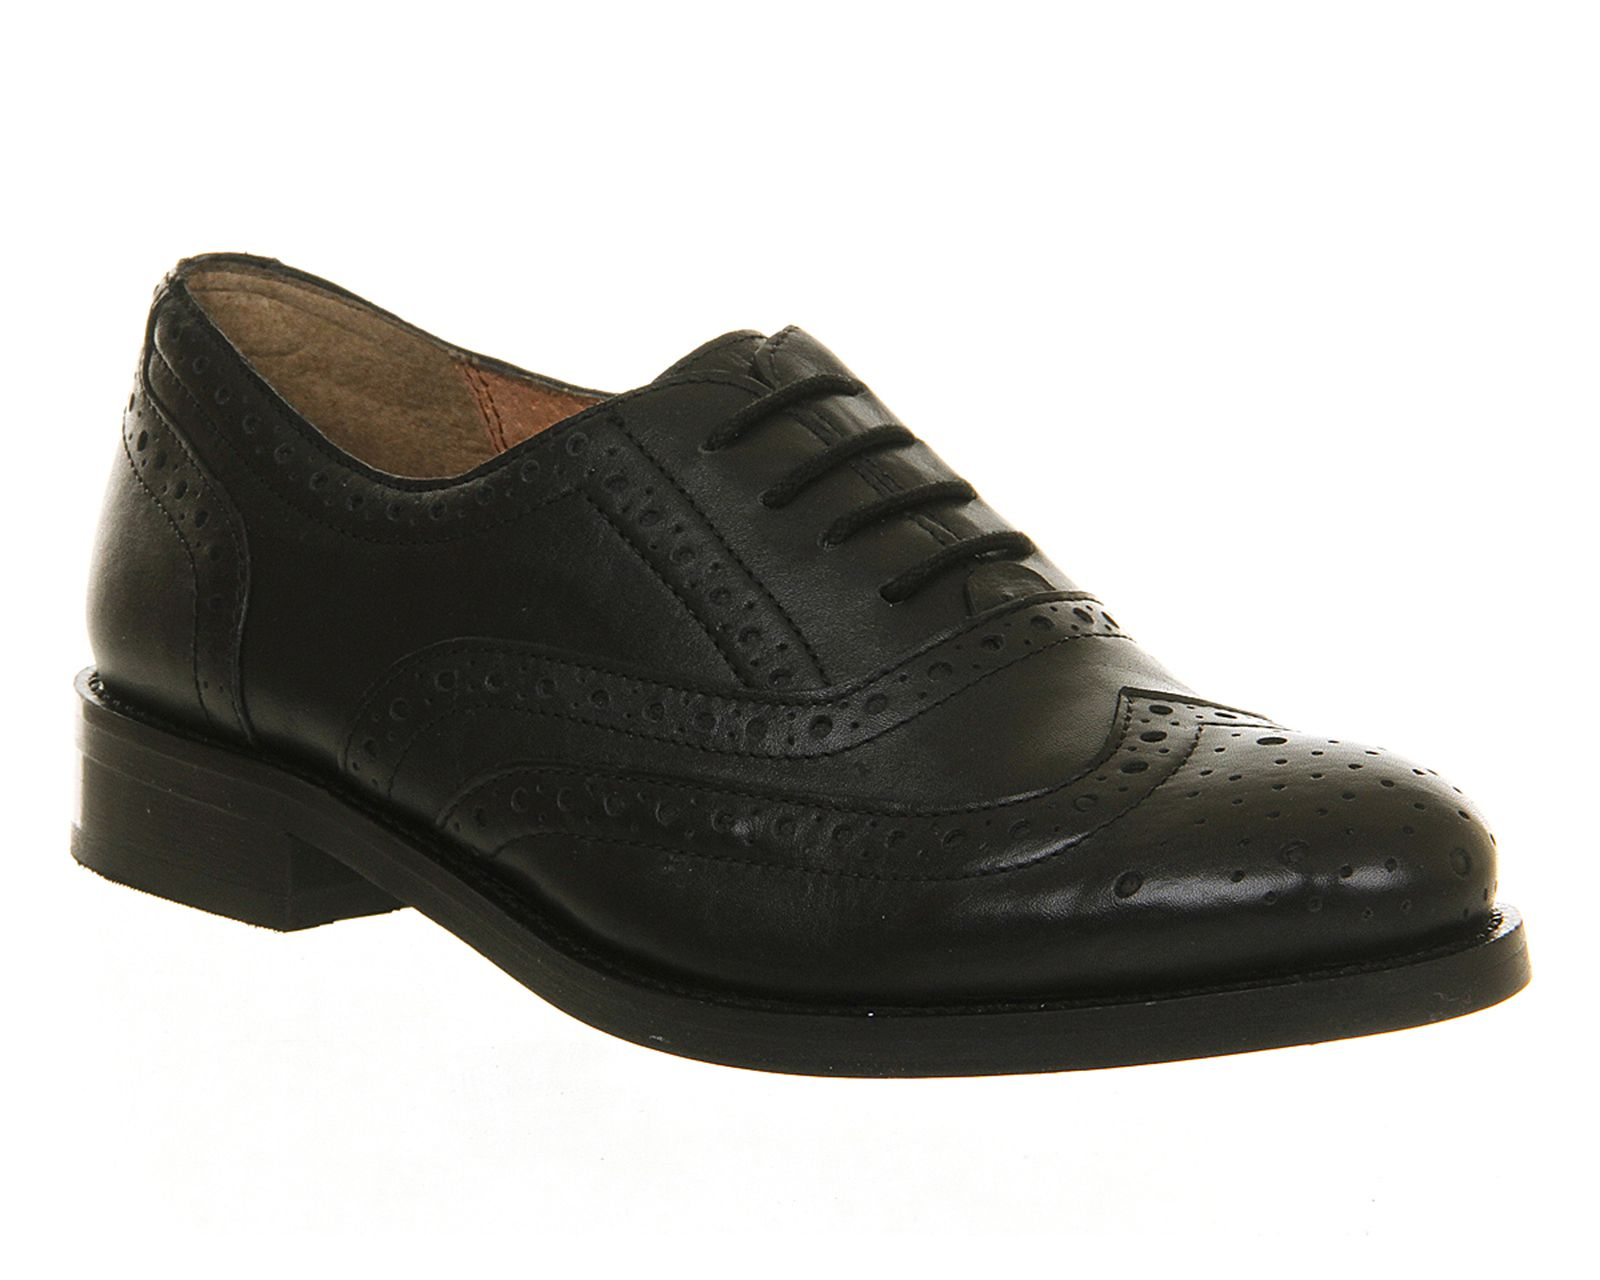 Victory lace up brogues